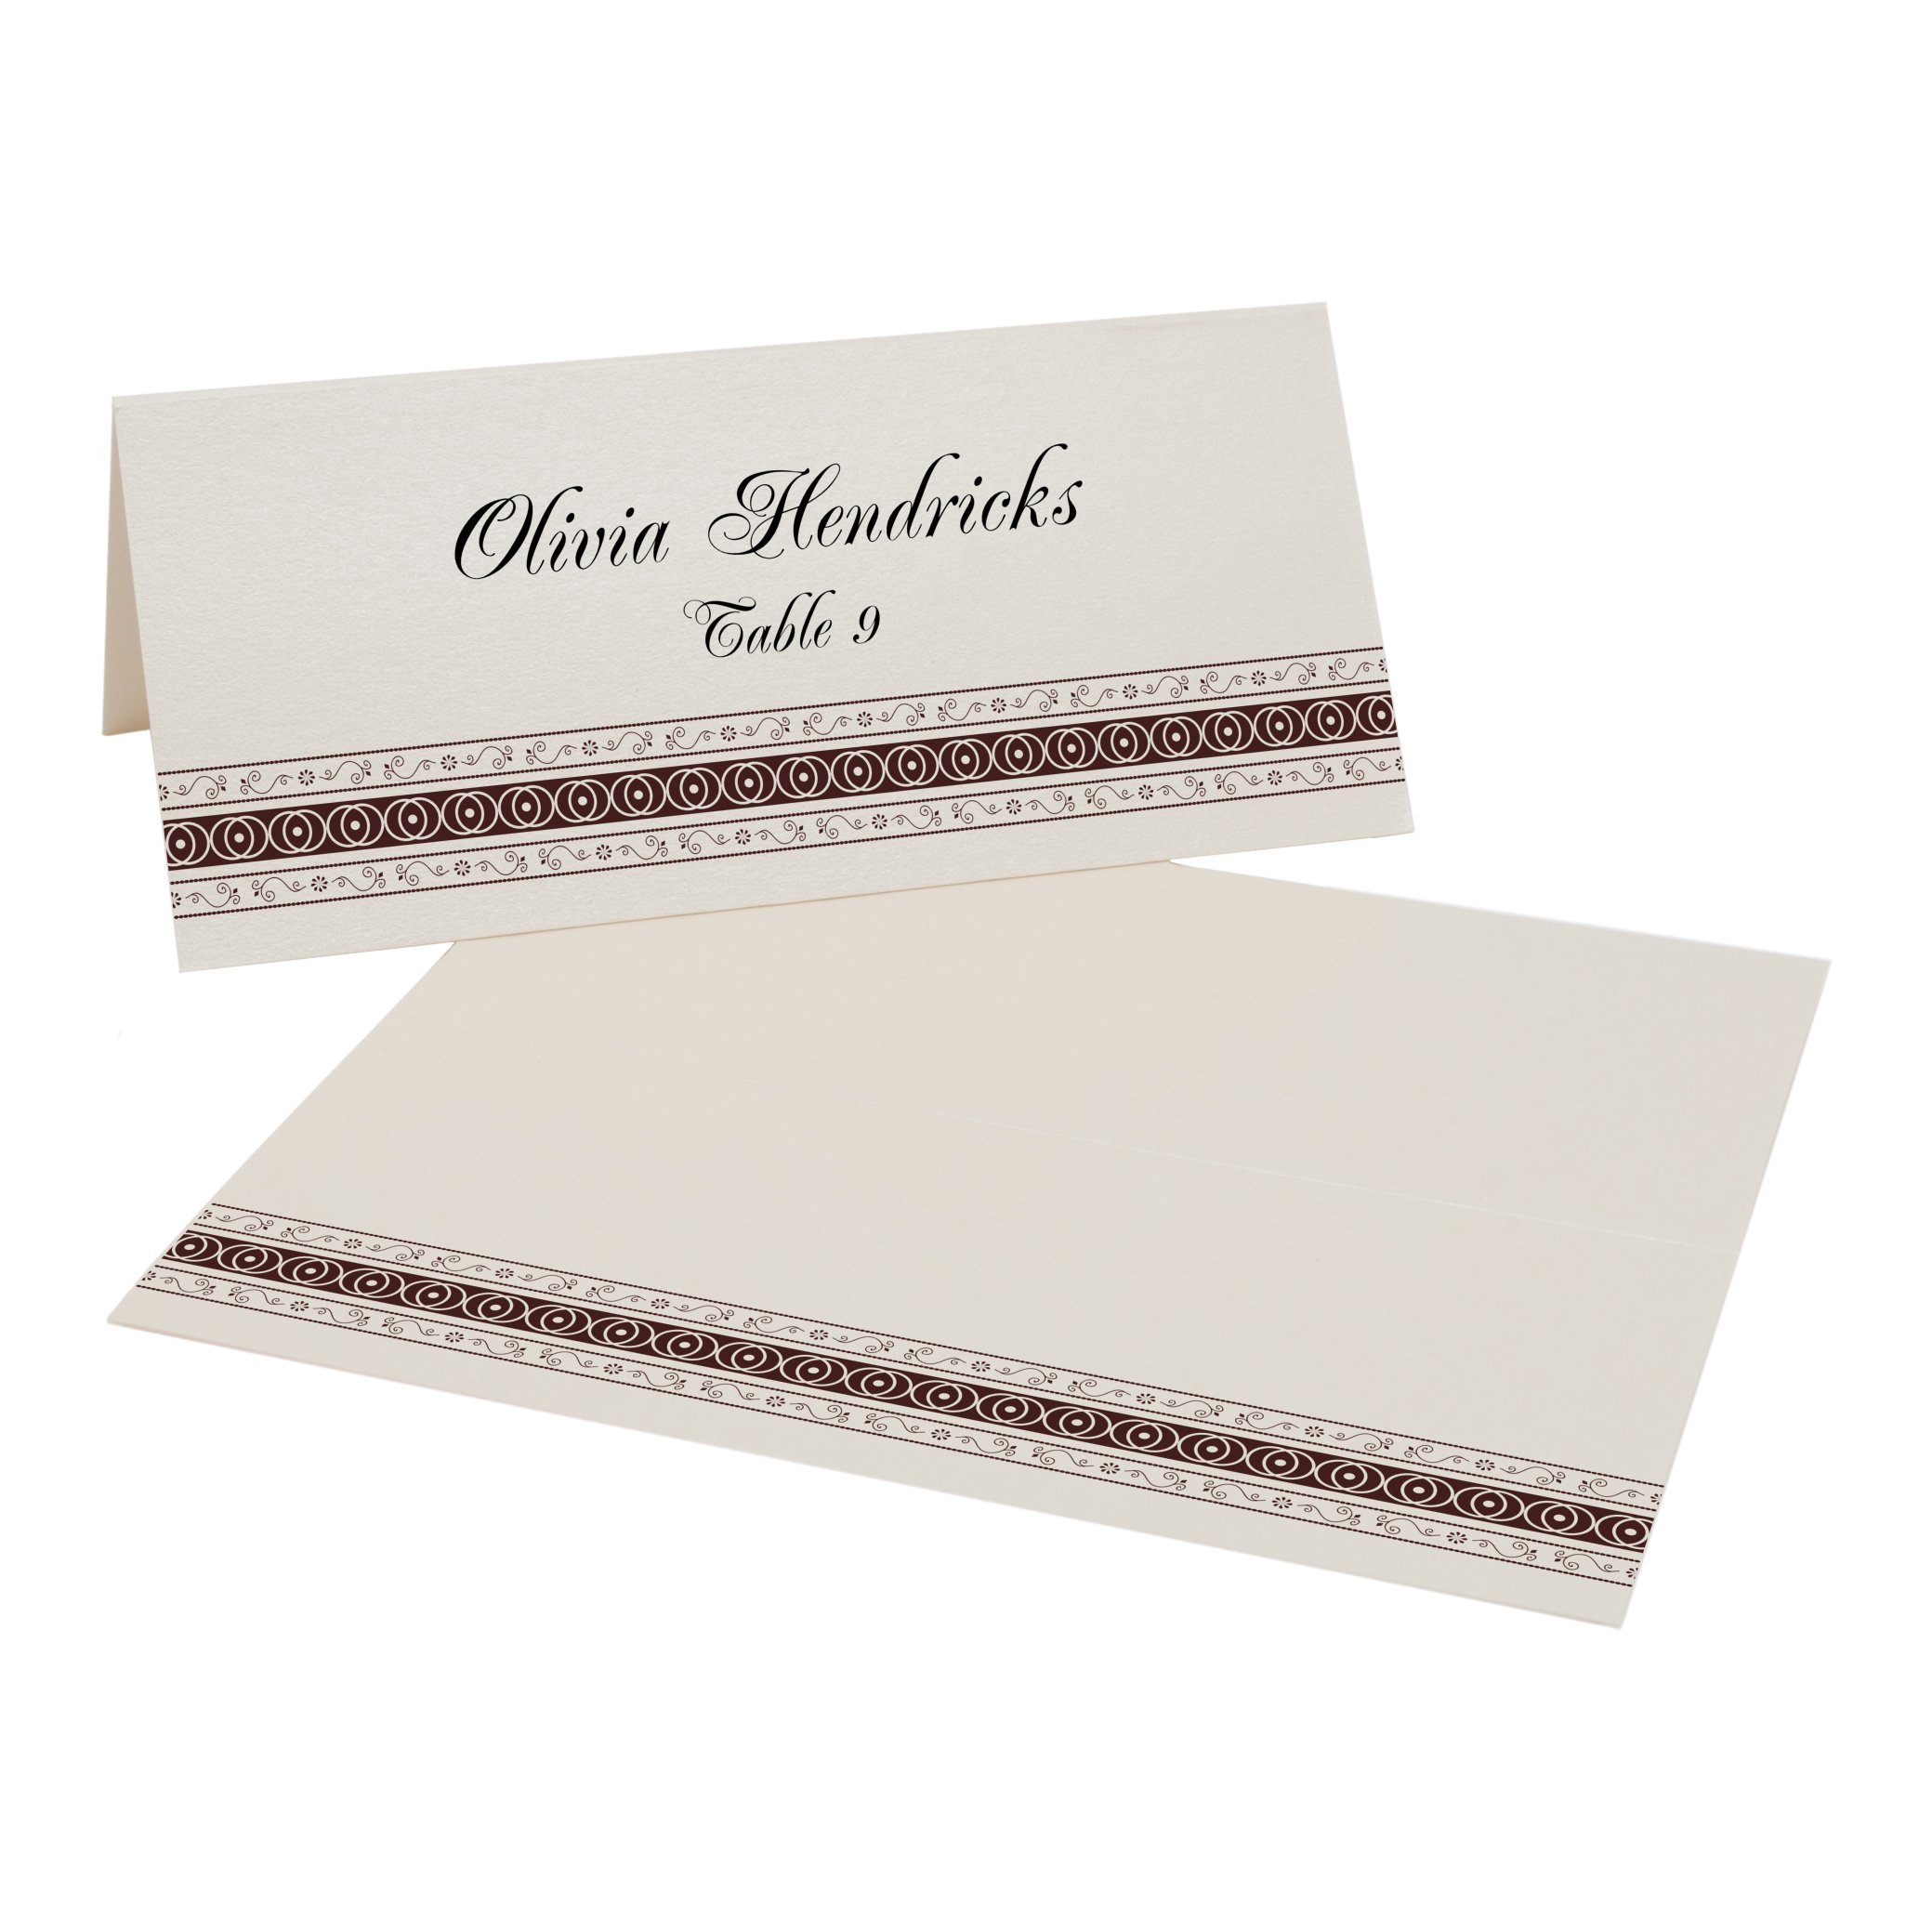 Mumbai Inspired Border Place Cards, Champagne, Chocolate, Set of 375 by Documents and Designs